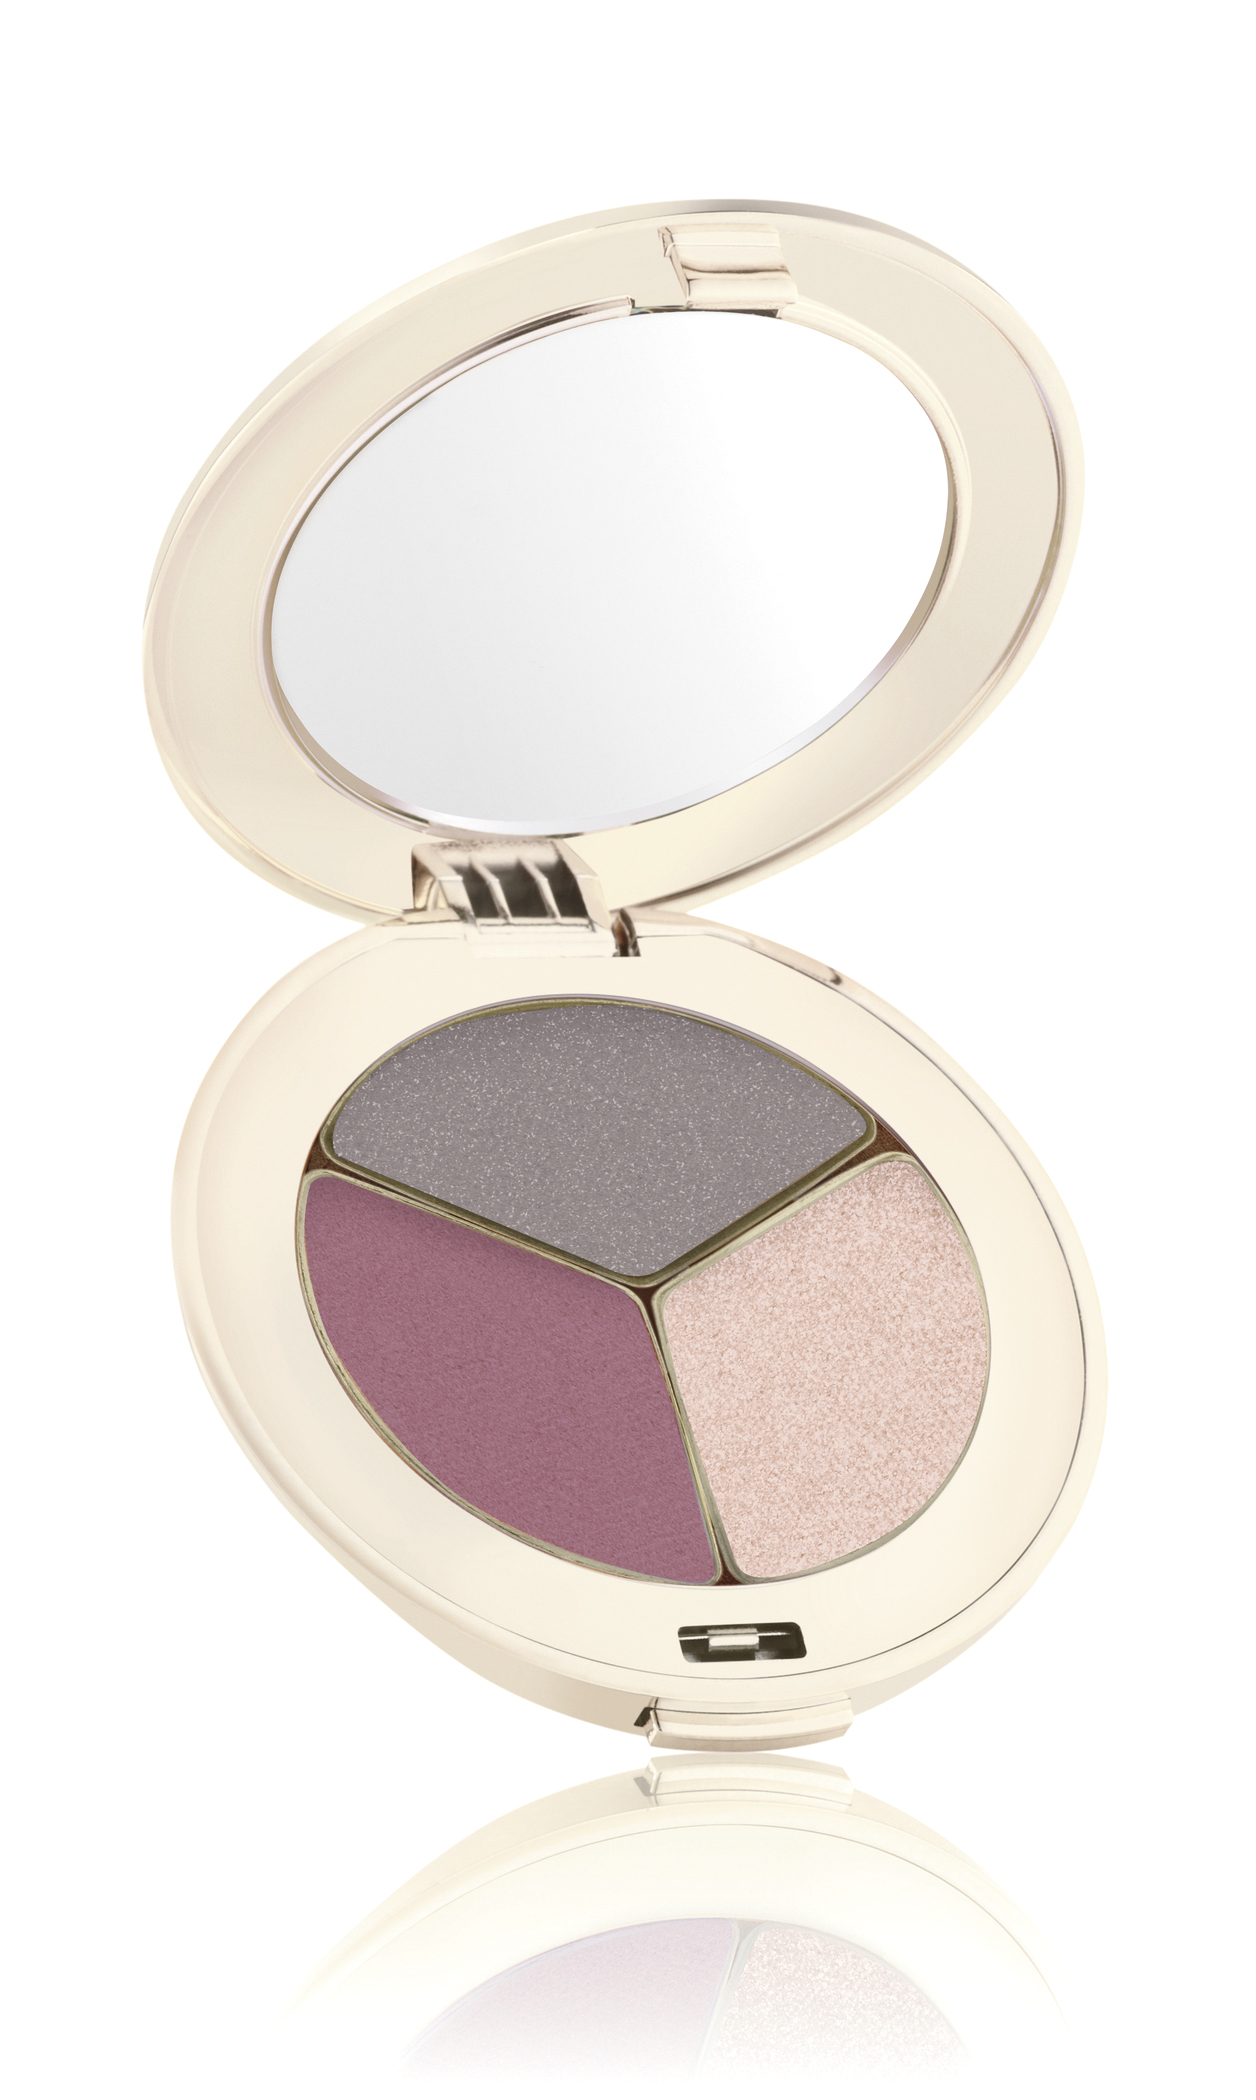 Lidcshatten Twilight jane iredale